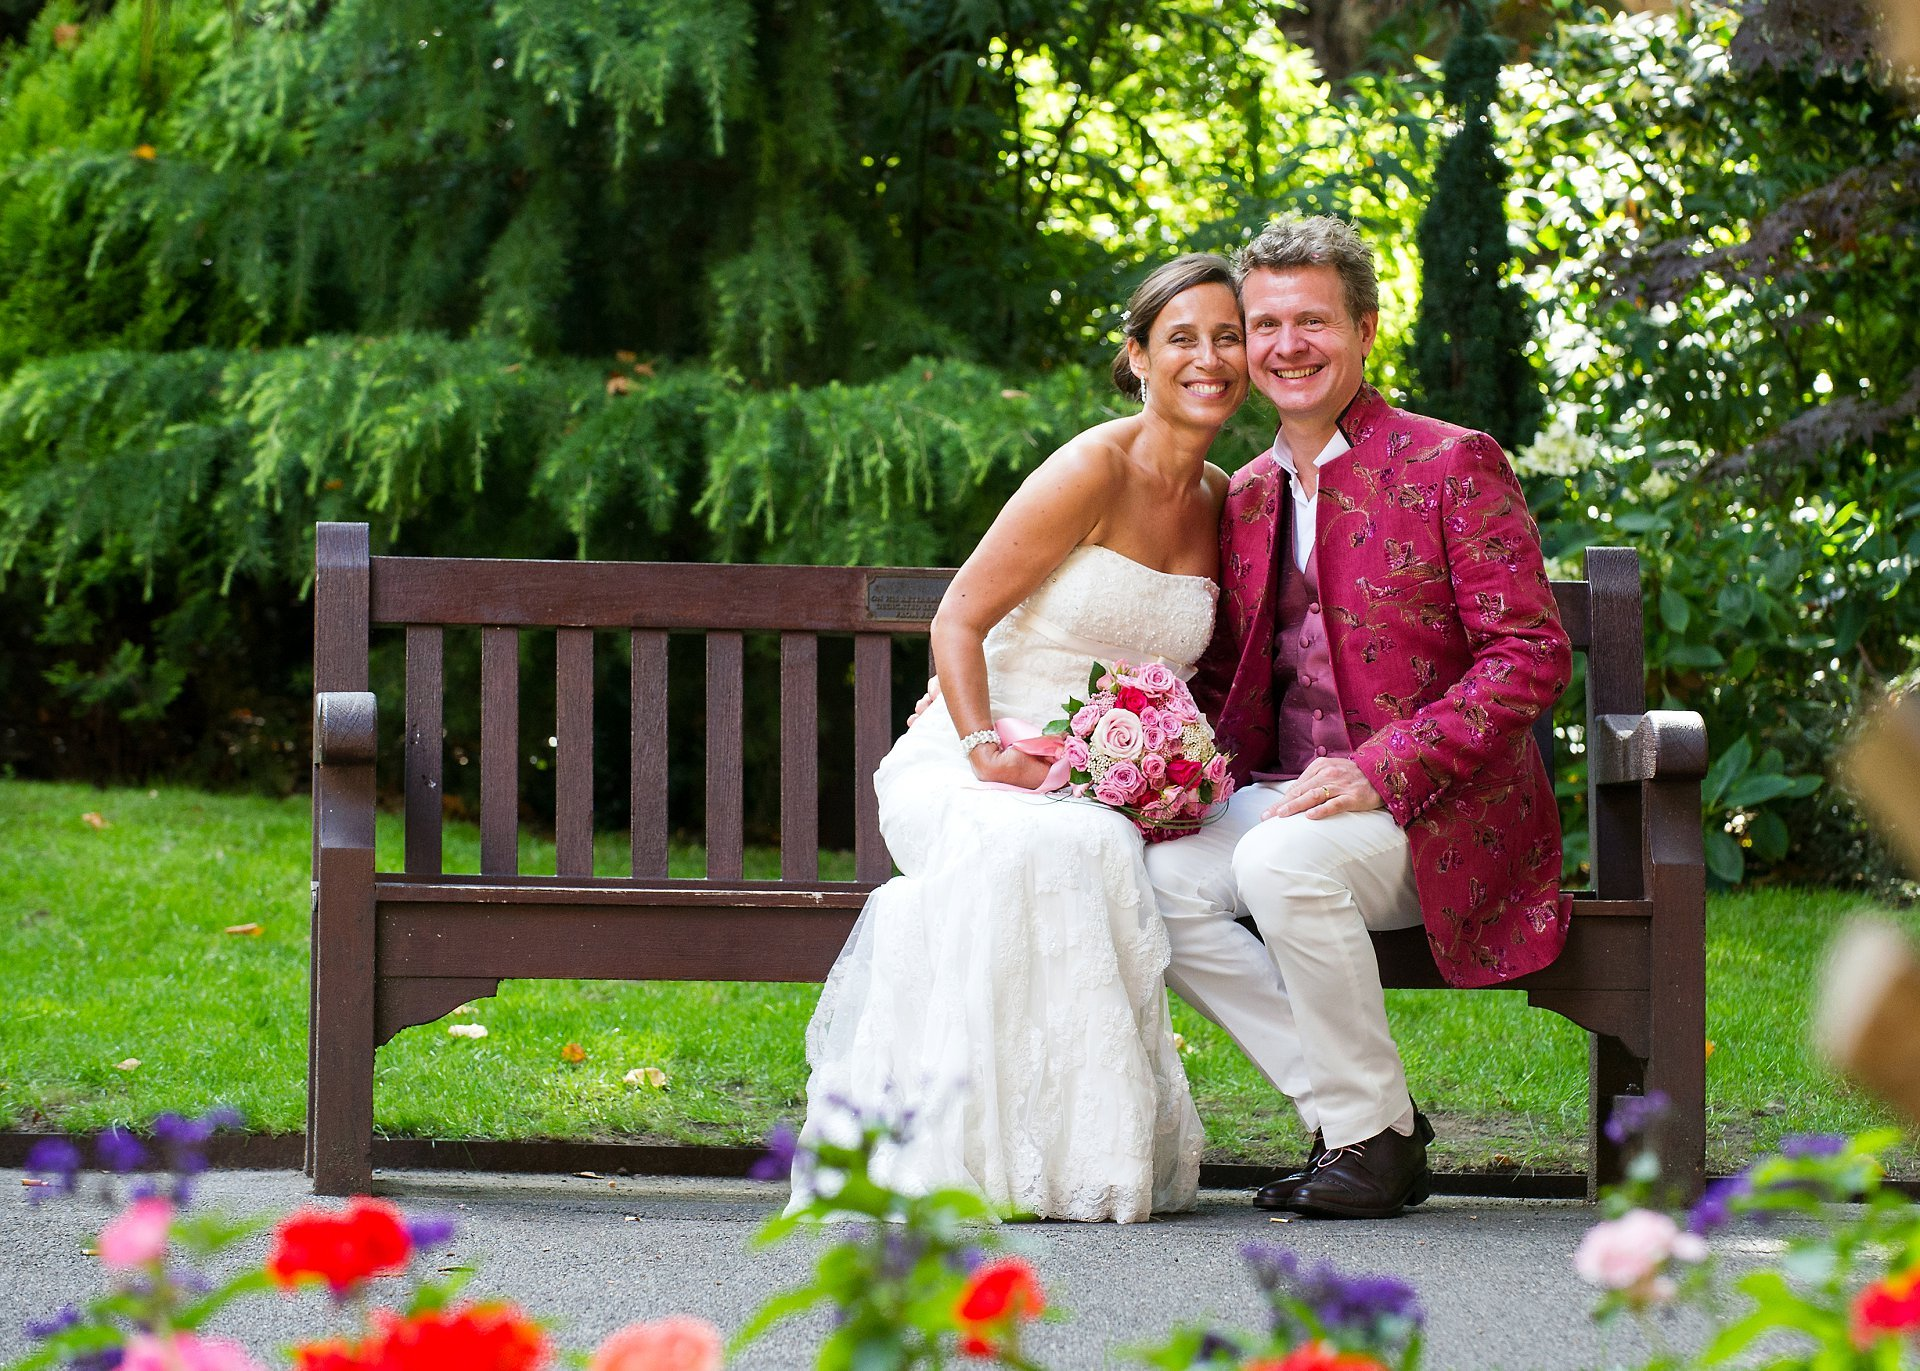 Mayfair Library wedding photography by Emma Duggan who specialises in London register office weddings, here a couple sitting on a bench in Mount Street Gardens after their wedding ceremony